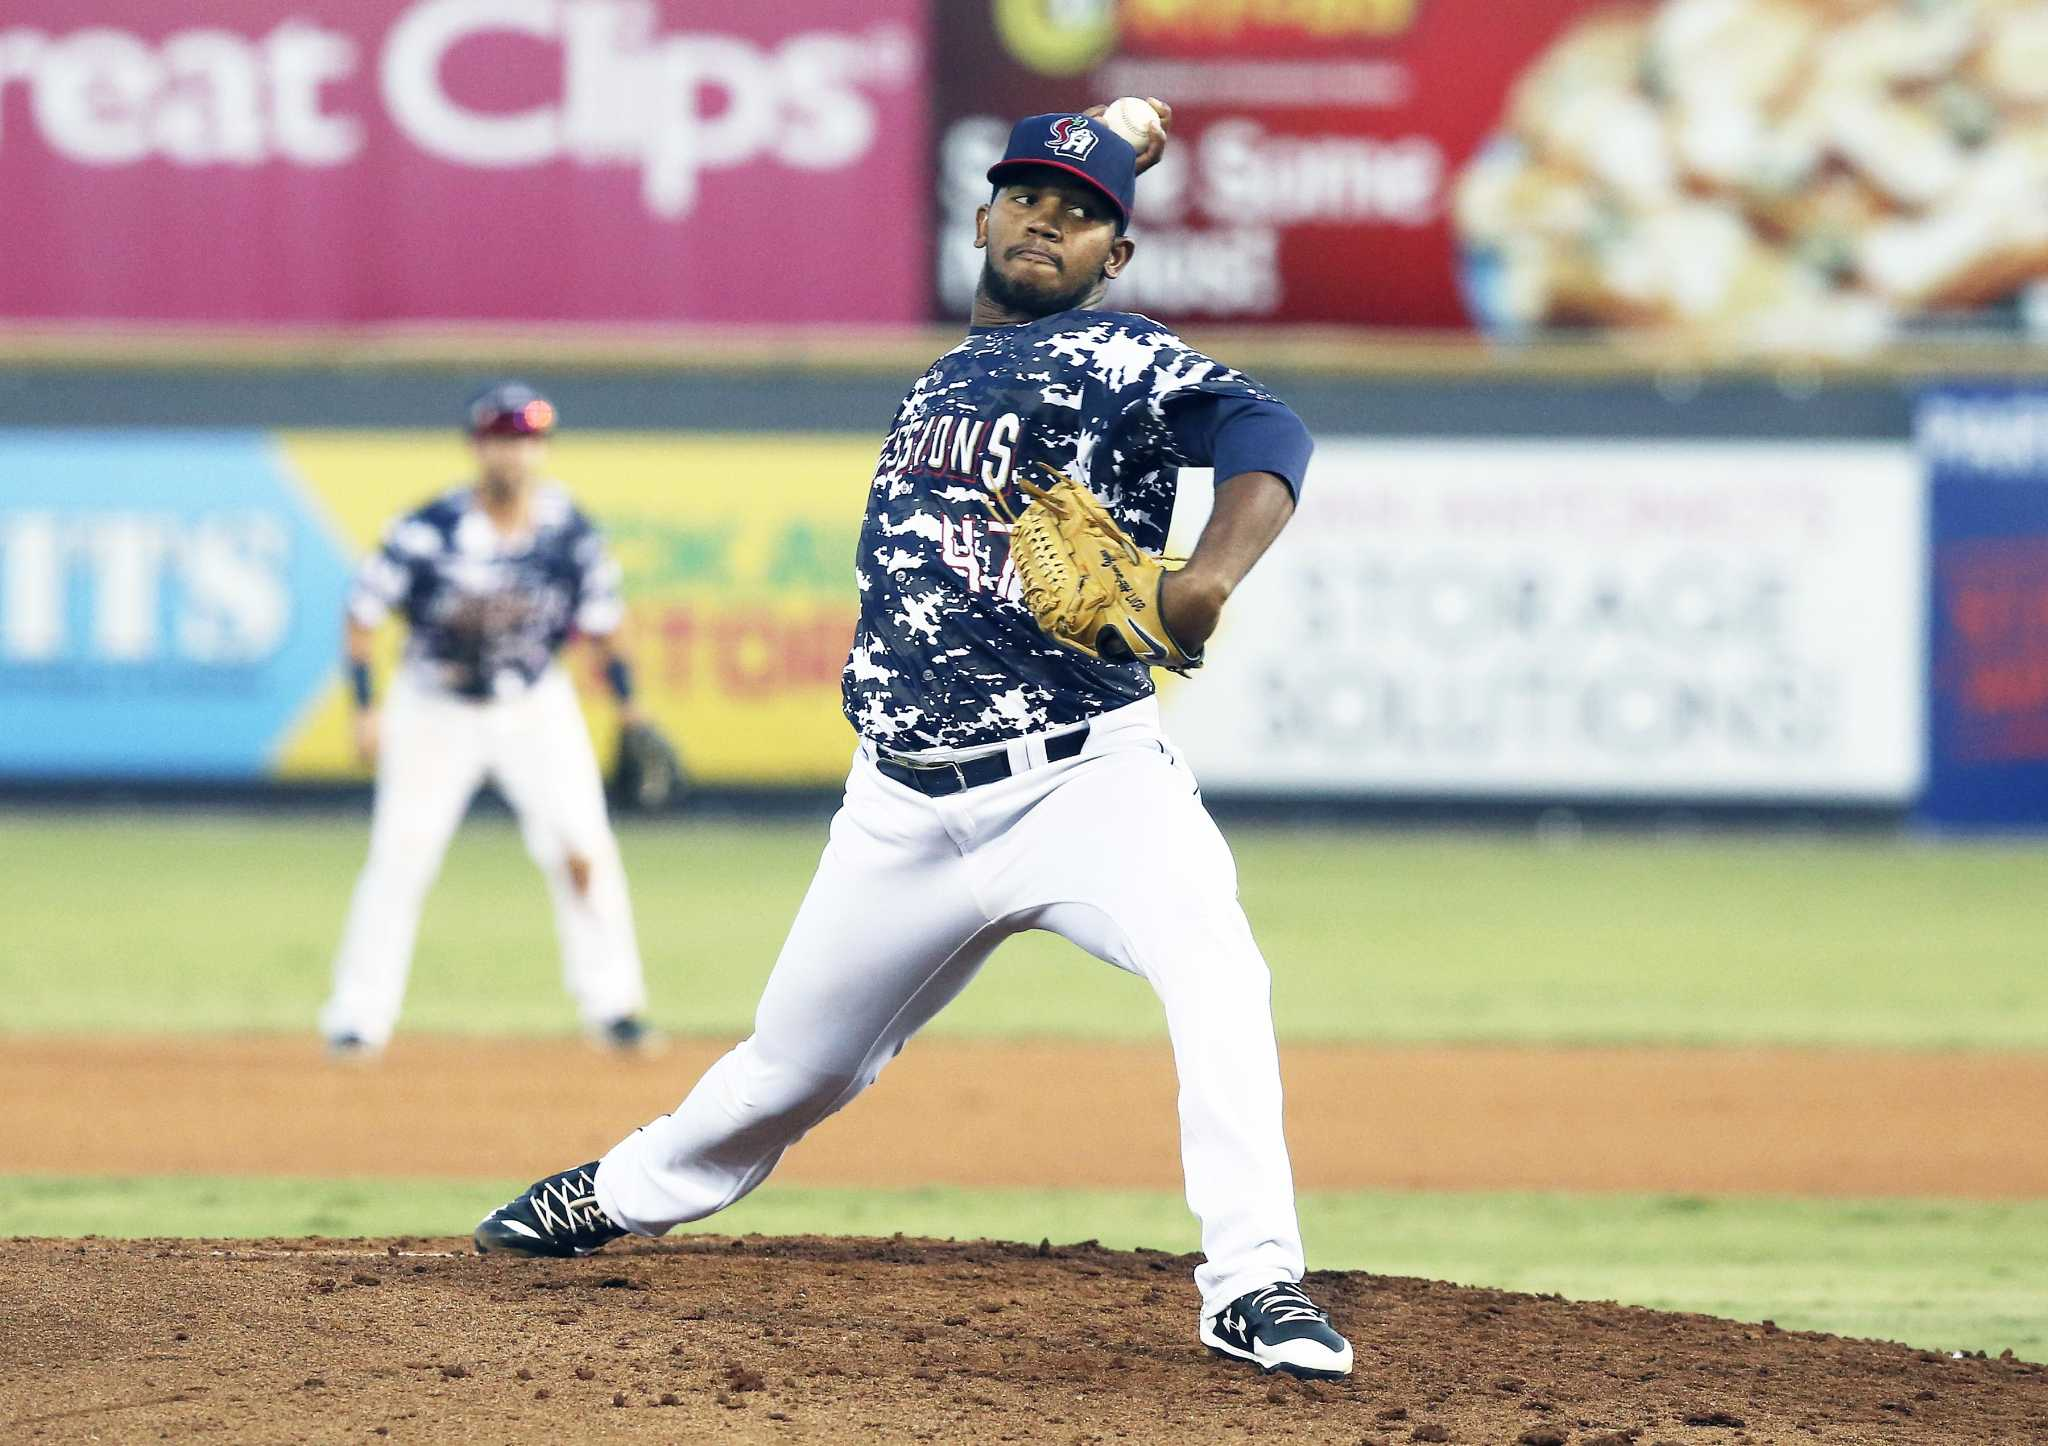 Missions Agree To Be An Affiliate Of The Milwaukee Brewers